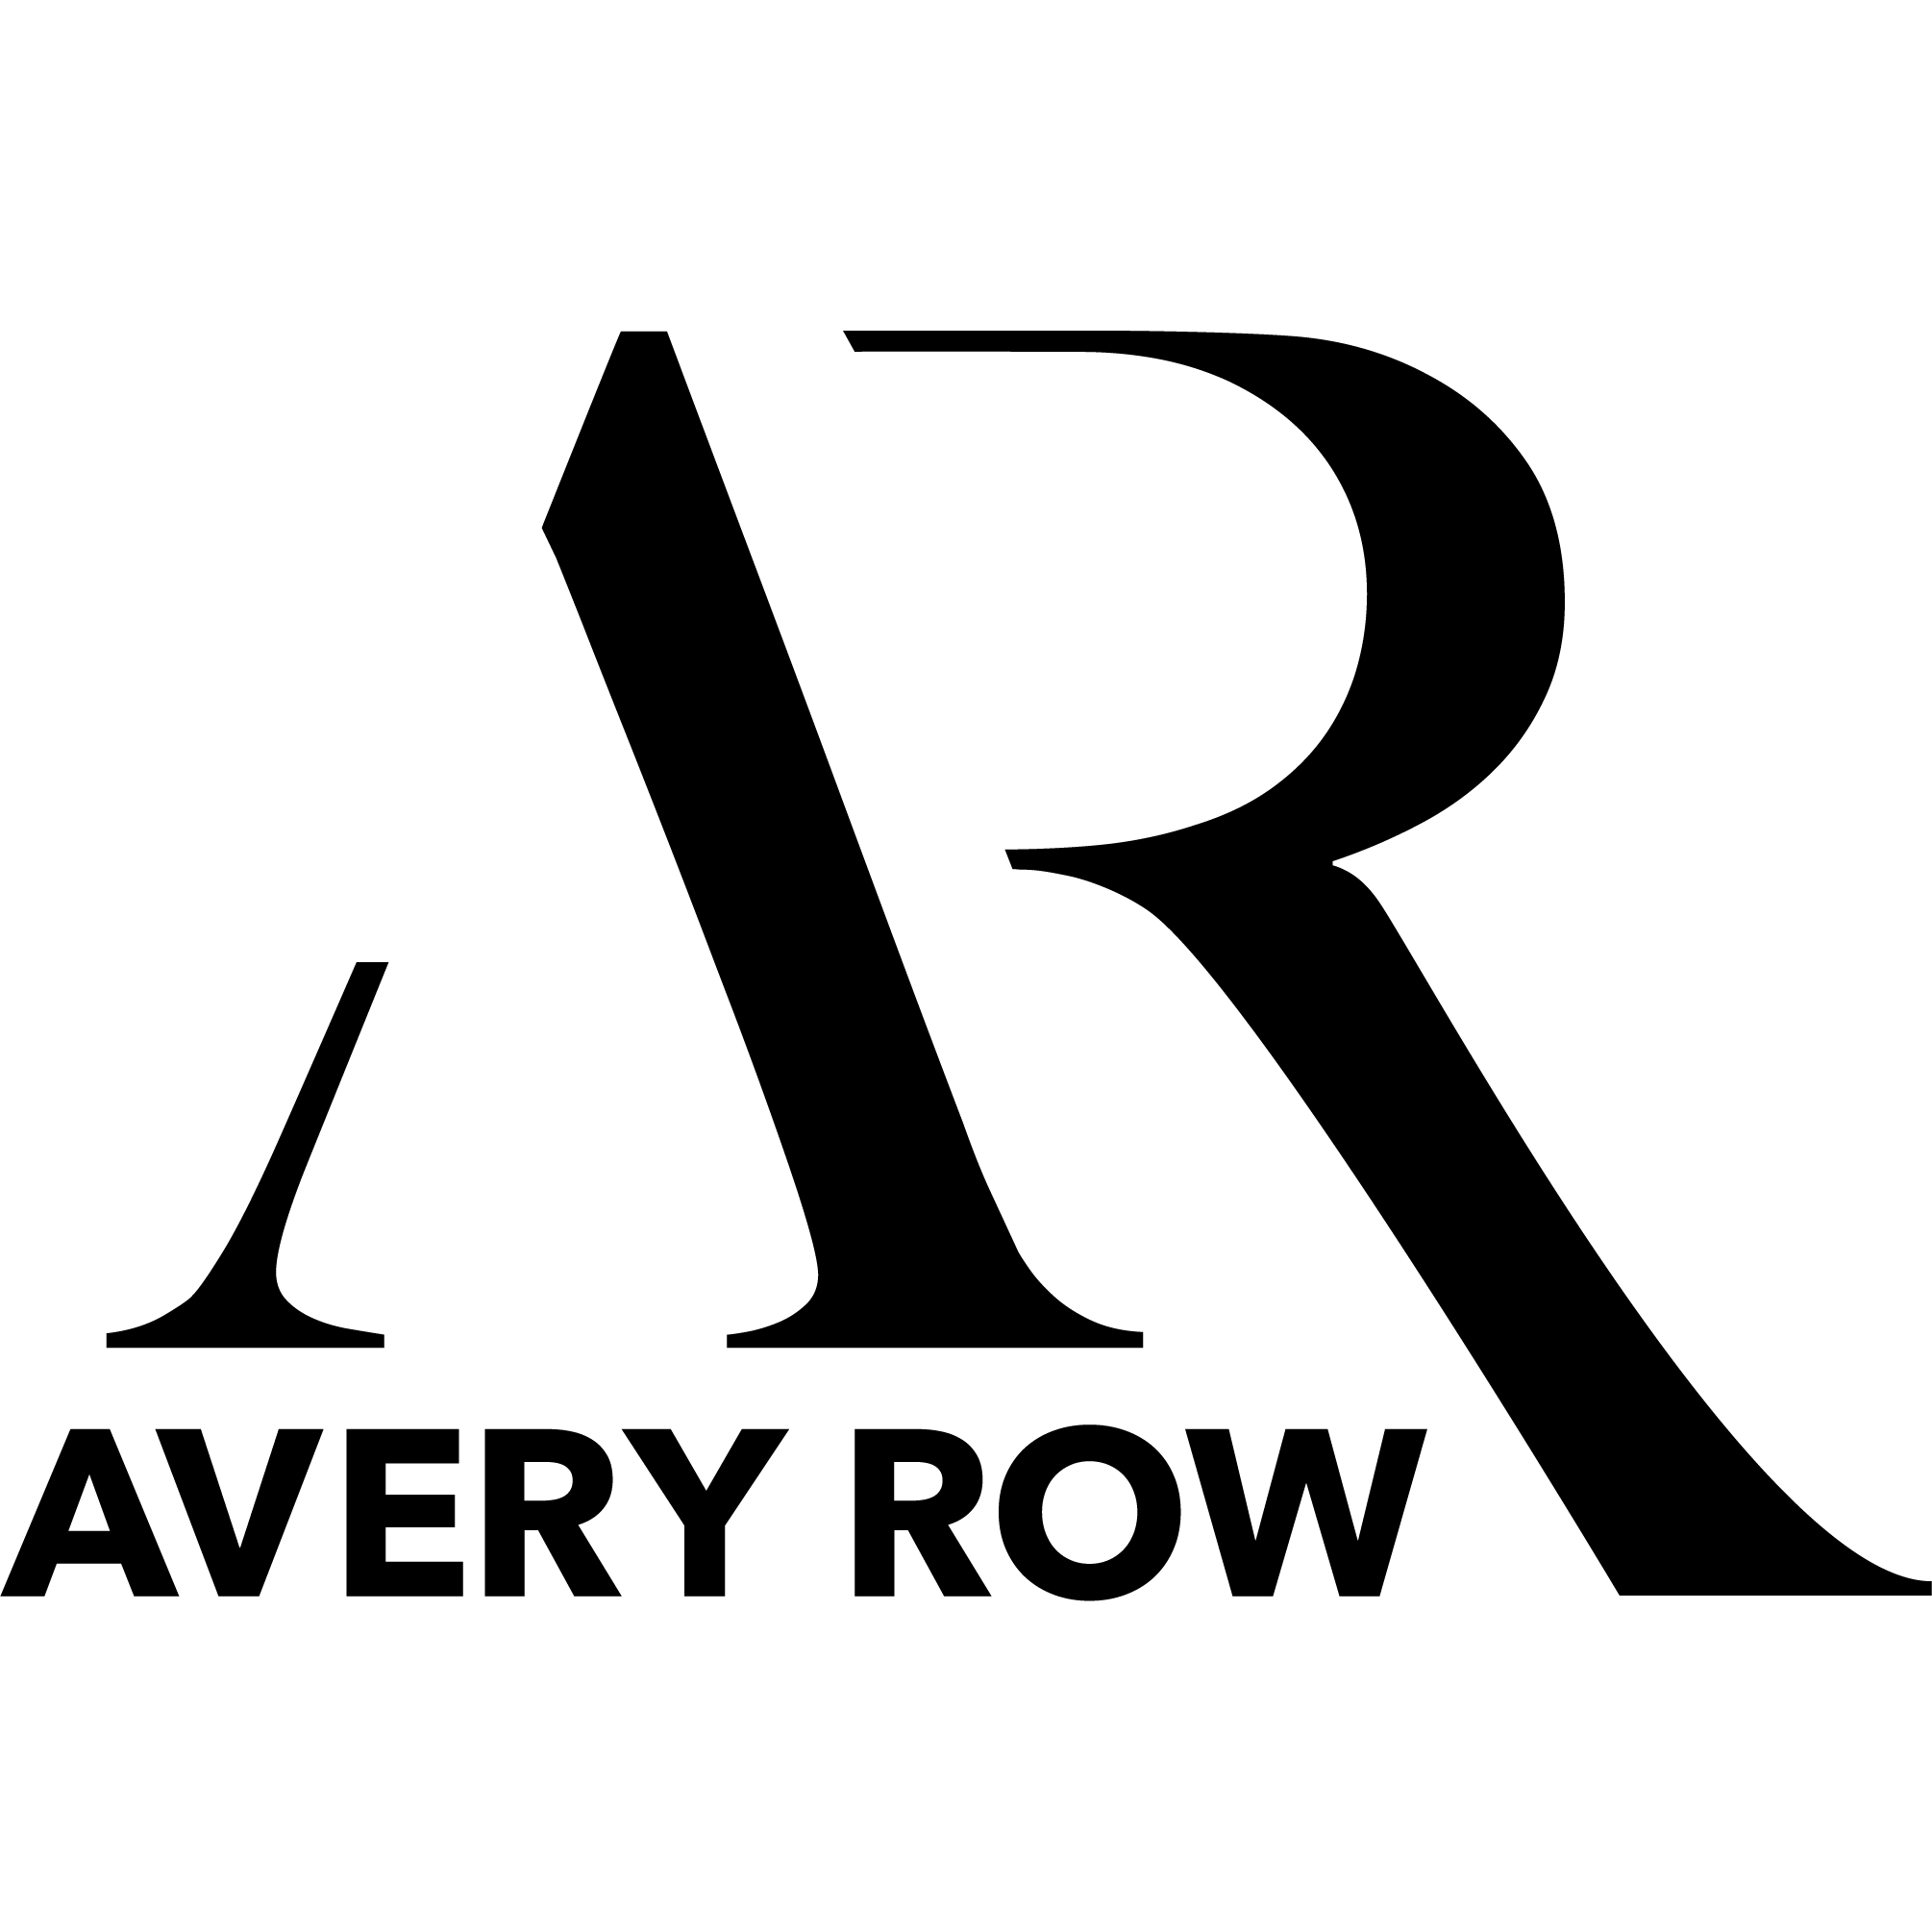 Avery Row - Arlington, VA 22209 - (844)497-4057 | ShowMeLocal.com